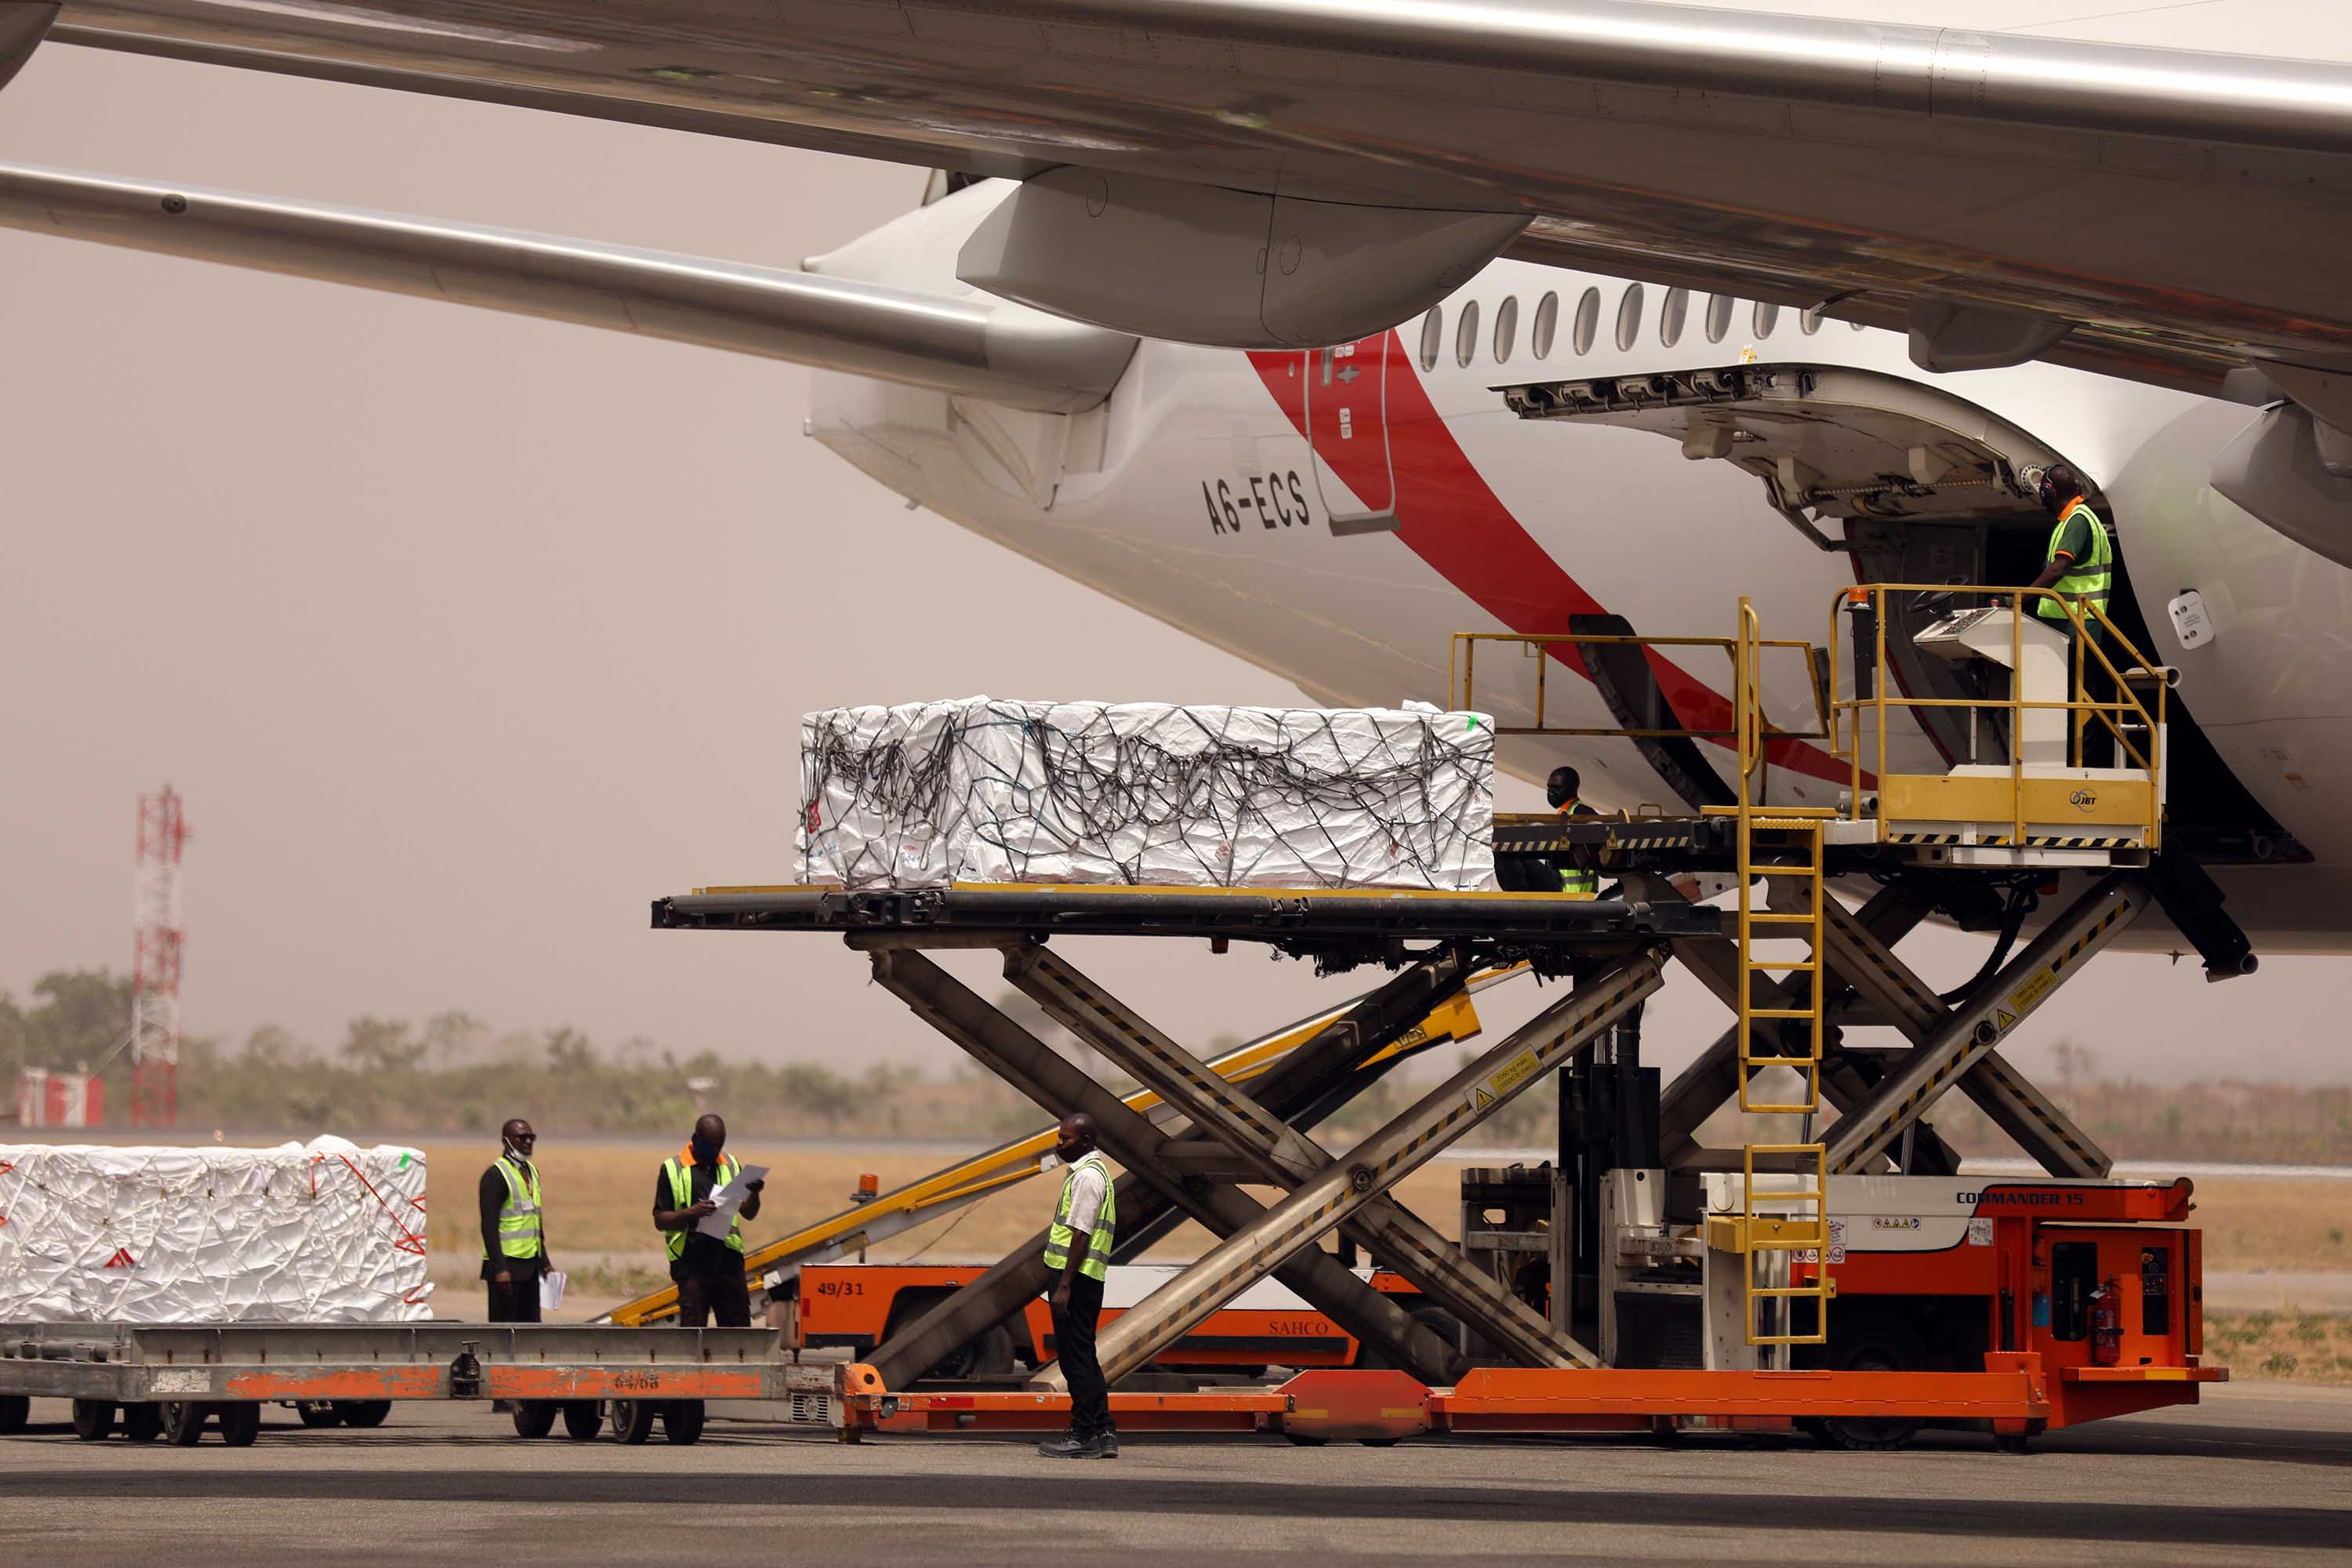 The first batch of Oxford-AstraZeneca Covid-19 vaccine doses are offloaded from a plane at  Nnamdi Azikiwe International Airport in Abuja, Nigeria, on March 2.